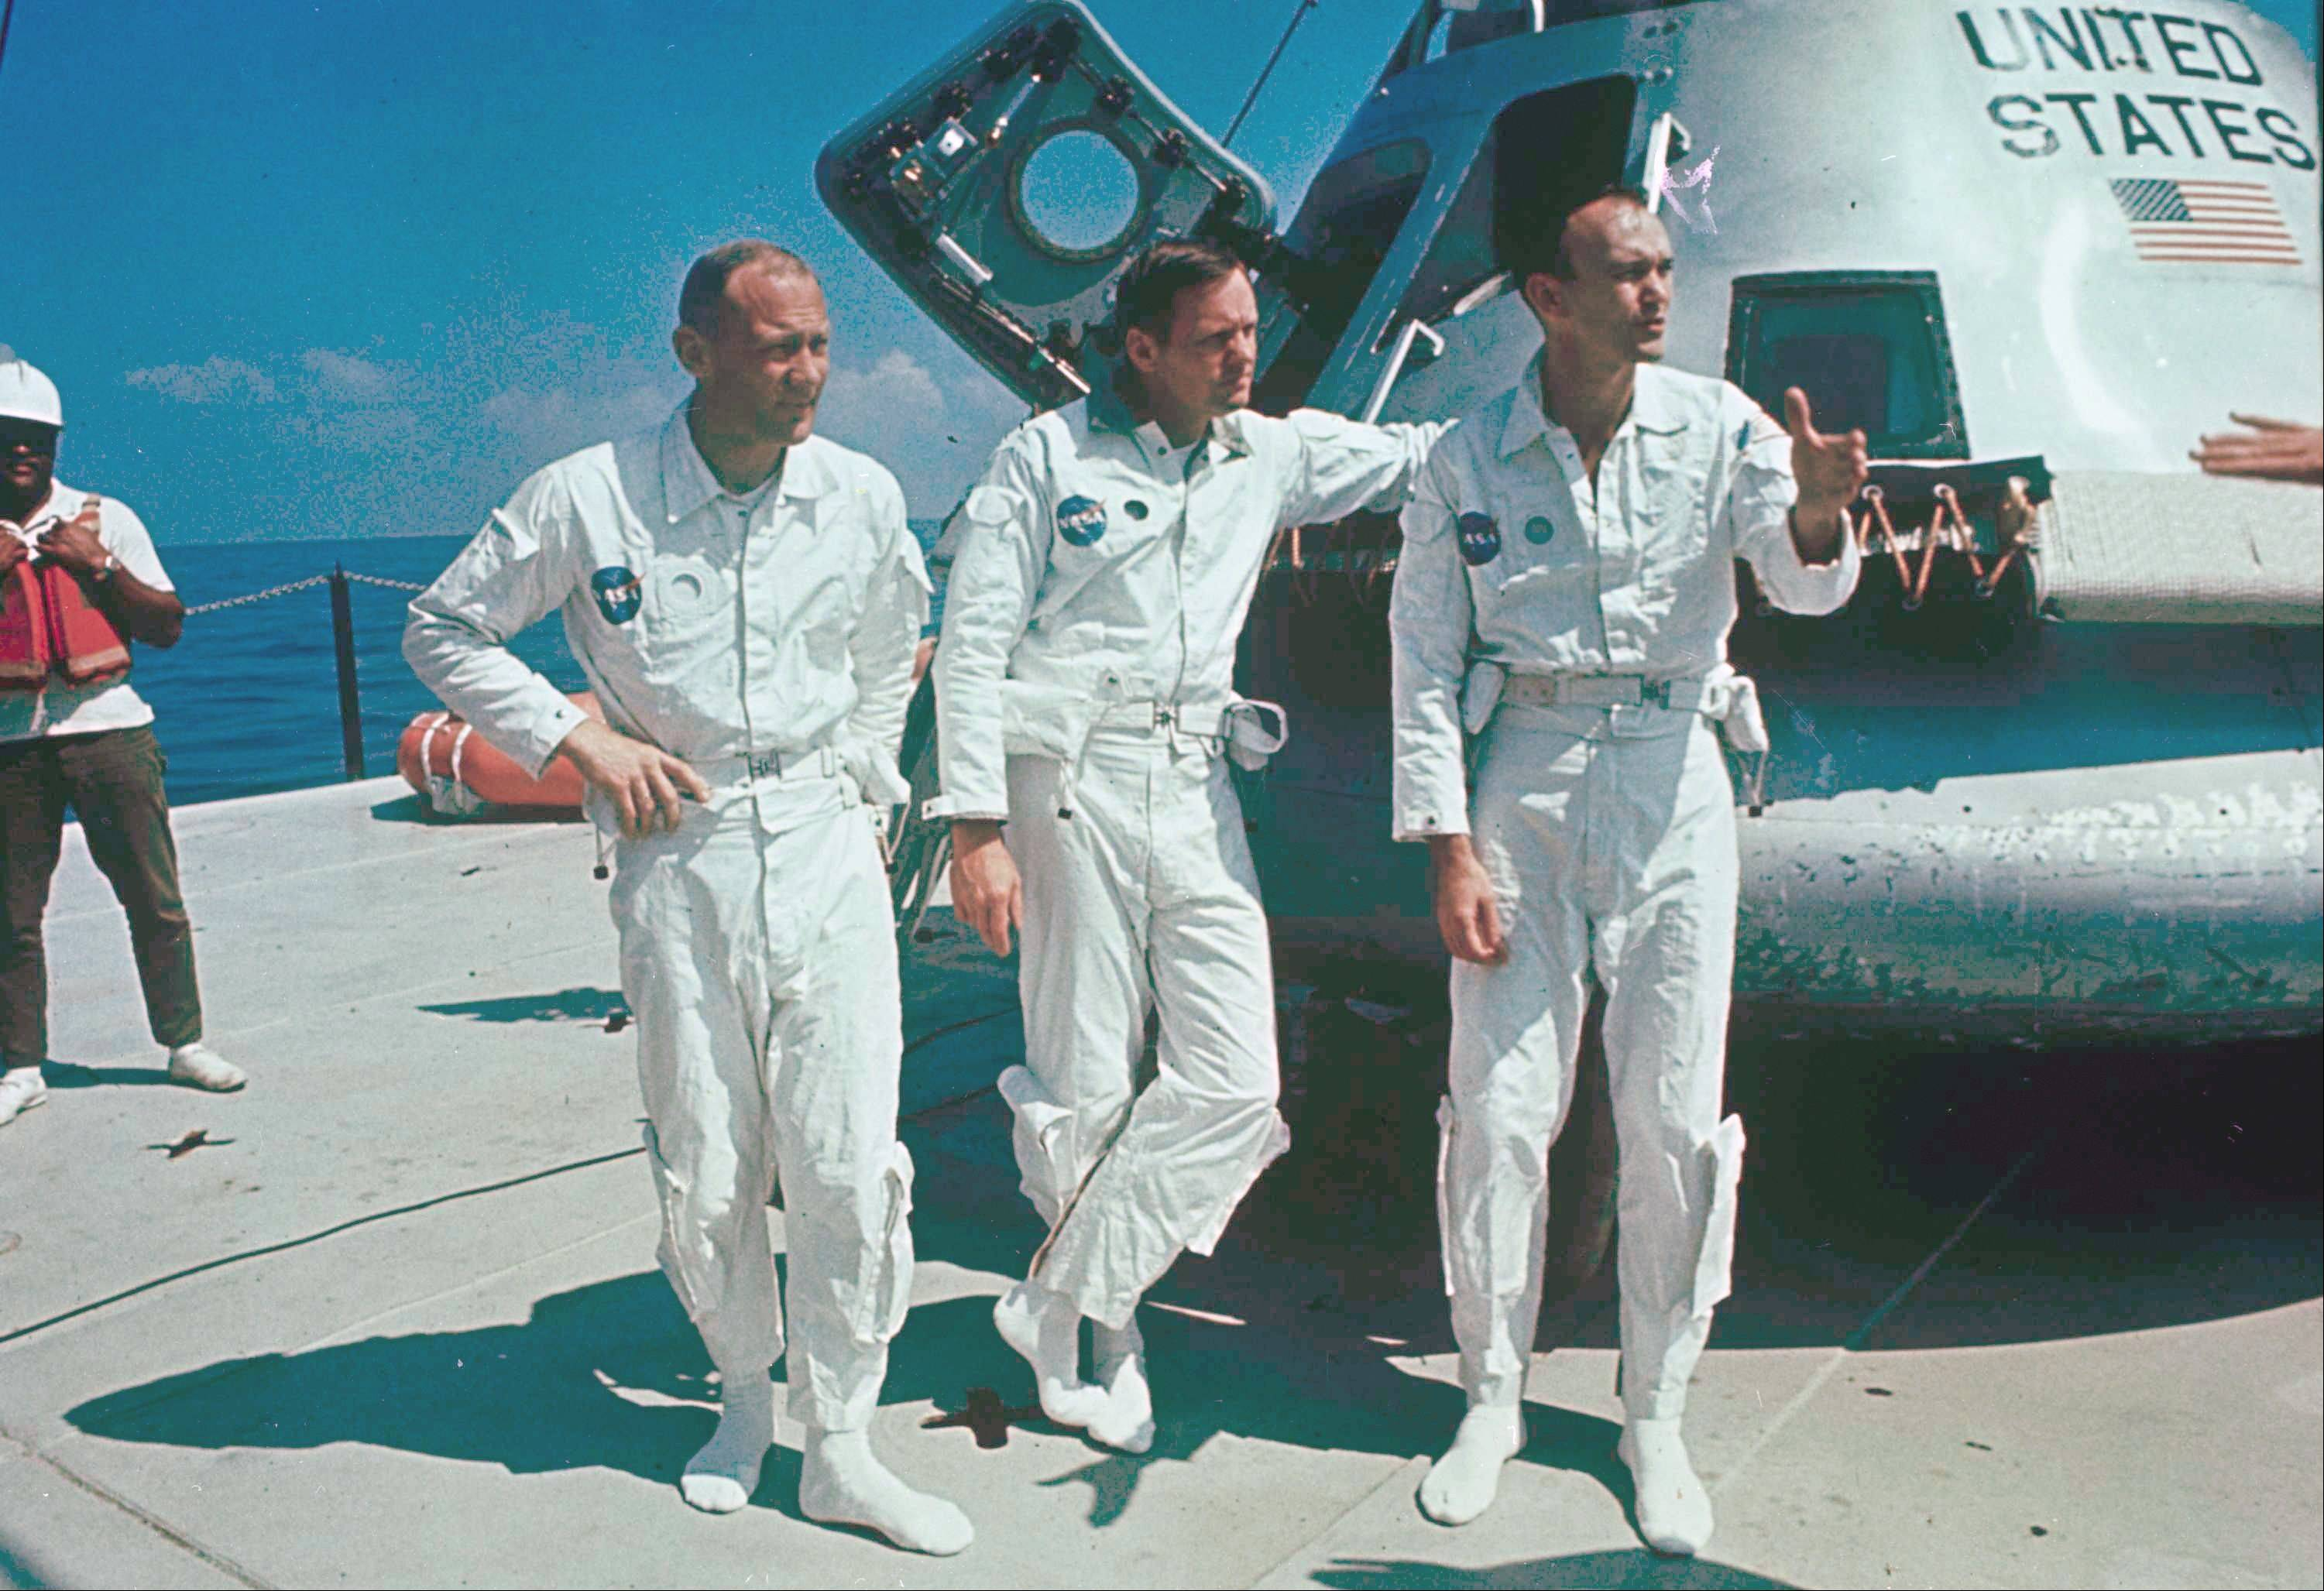 After the Apollo 11 crew made their mission to the moon in 1969, park officials in Carol Stream decided to recognize them by naming a park, community center and swimming pool in their honor. The crew, from left, was made up of Buzz Aldrin, Neil Armstrong and Michael Collins.